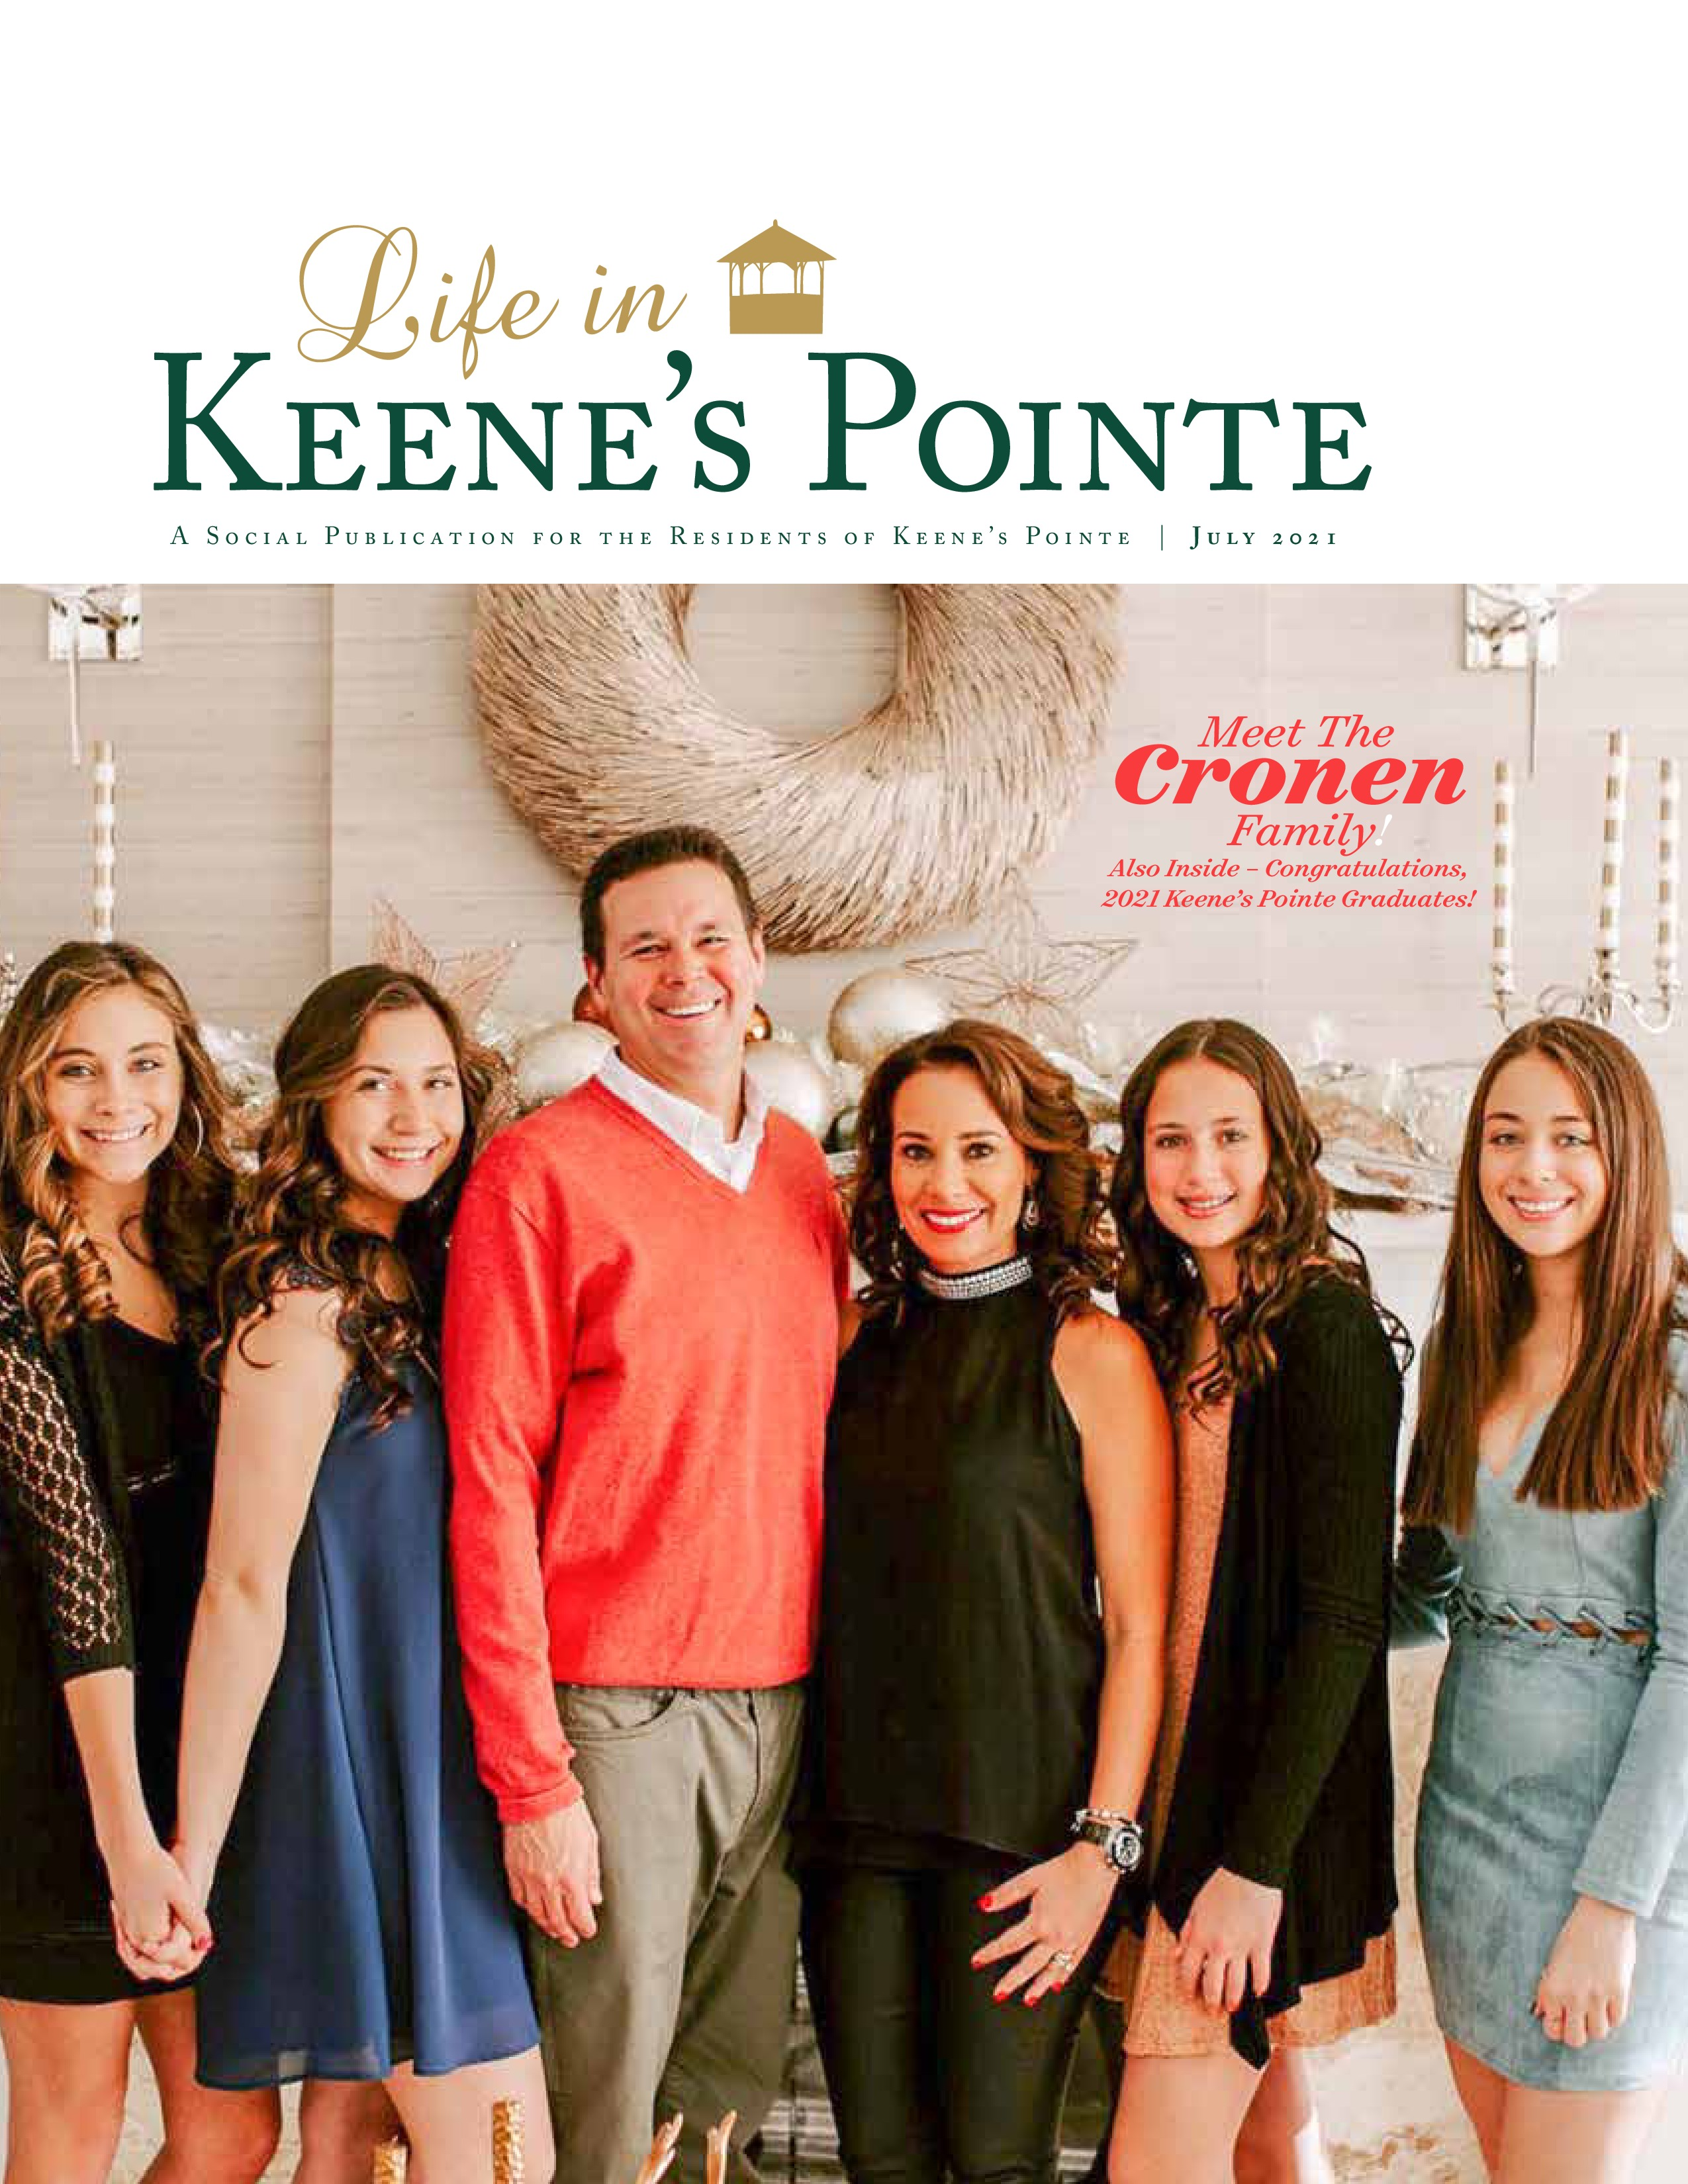 Life in Keene's Pointe 2021-07-01